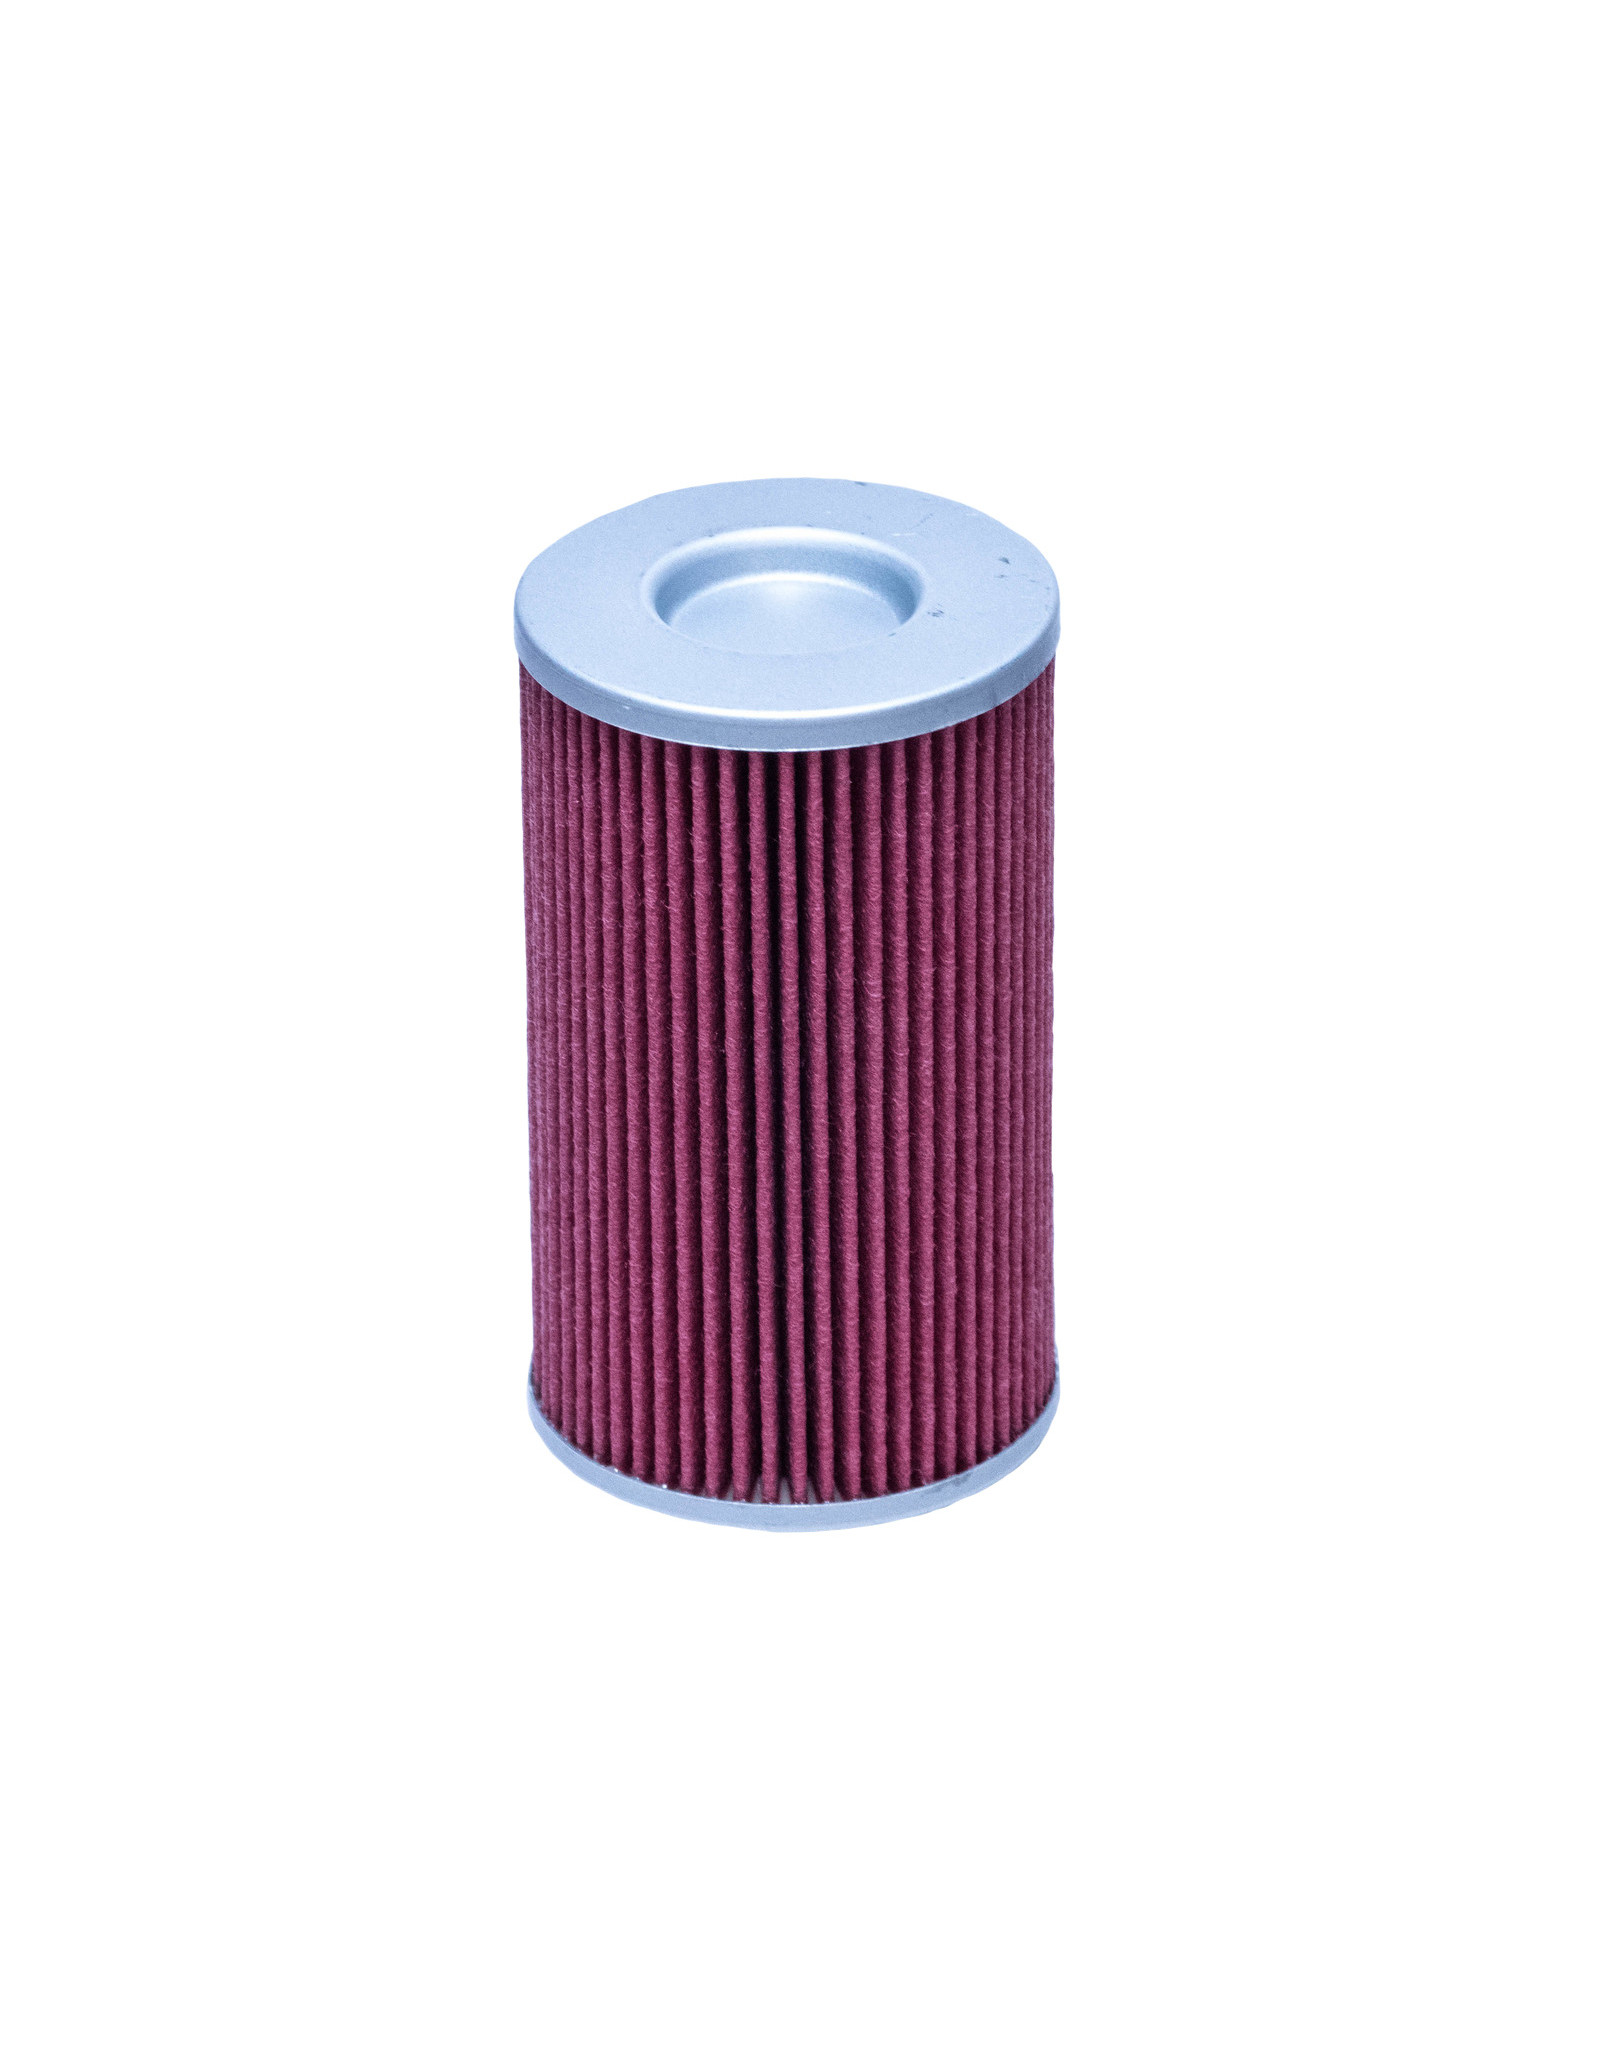 Aprilia Oil Filter - Extended (Suitable for RSV/Tuono 98-10) Please Check if it is standard or Extended size you need!!